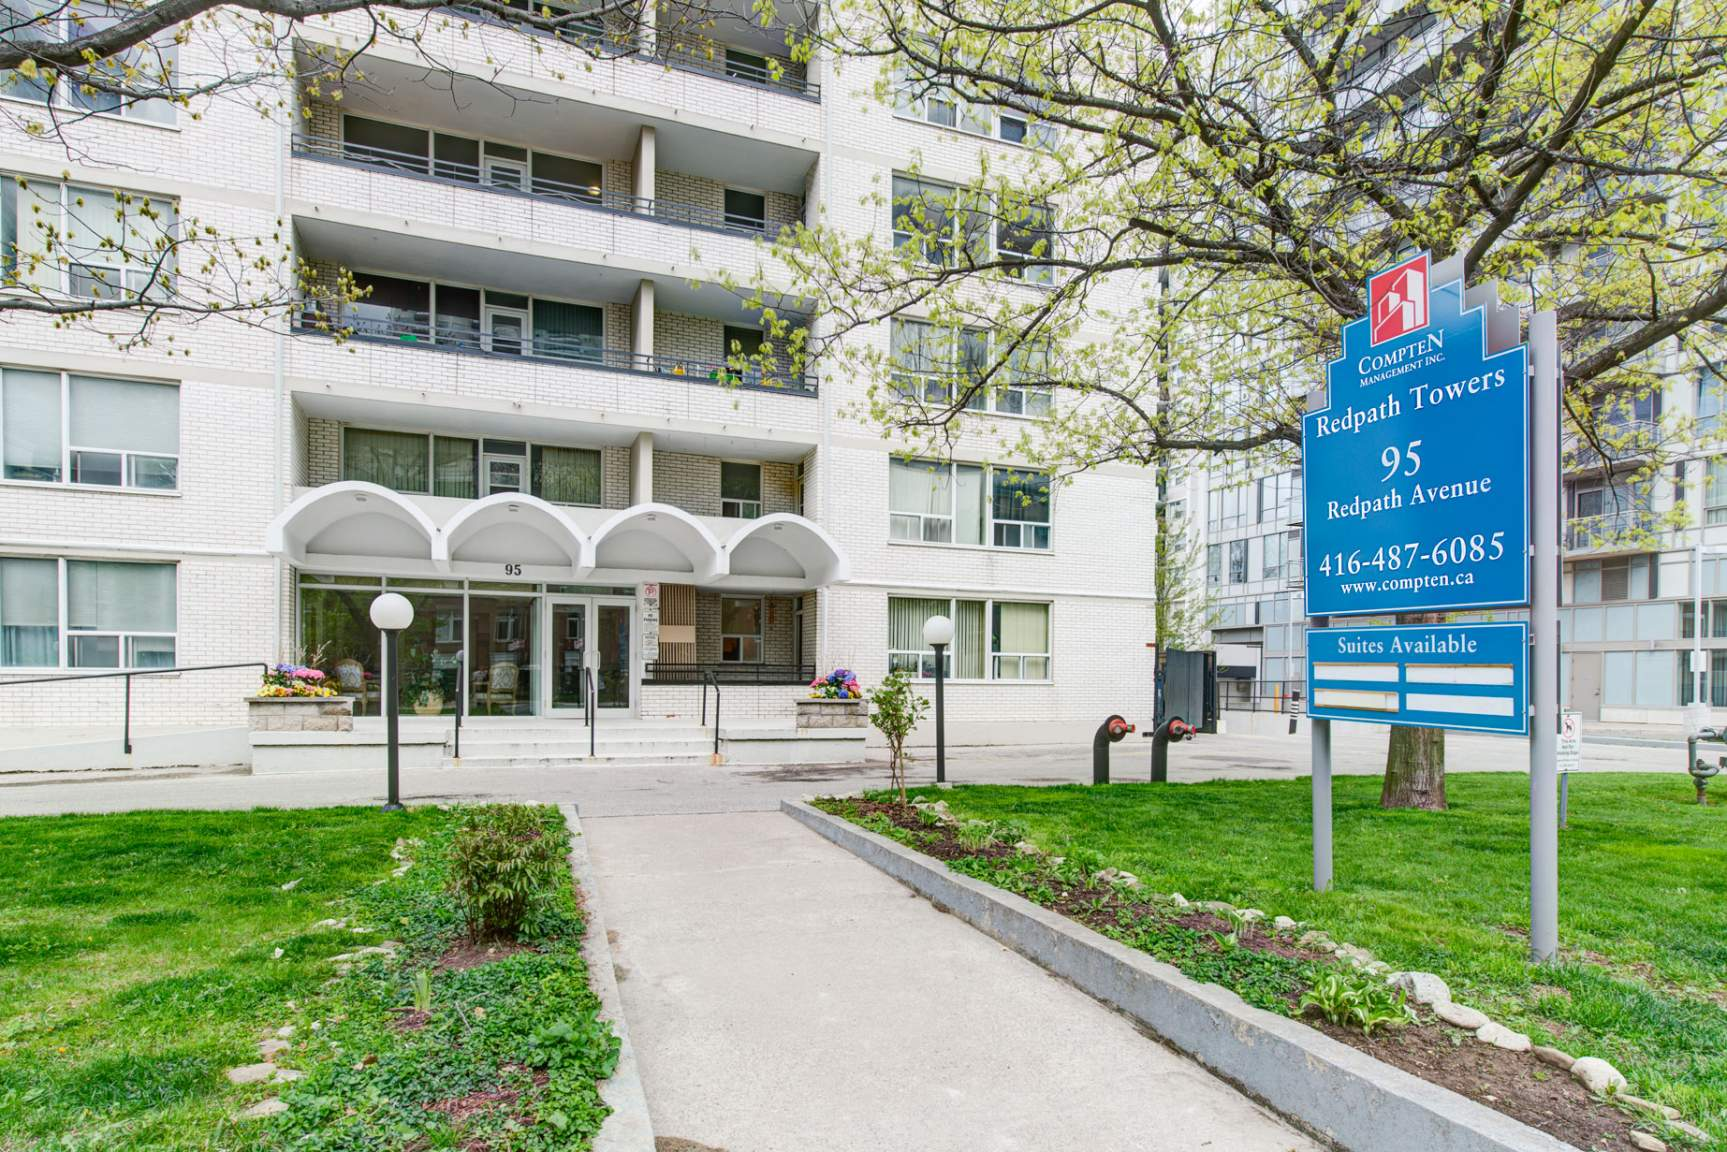 Studio / Bachelor Apartments for rent in Toronto at Redpath Tower - Photo 02 - RentersPages – L400652